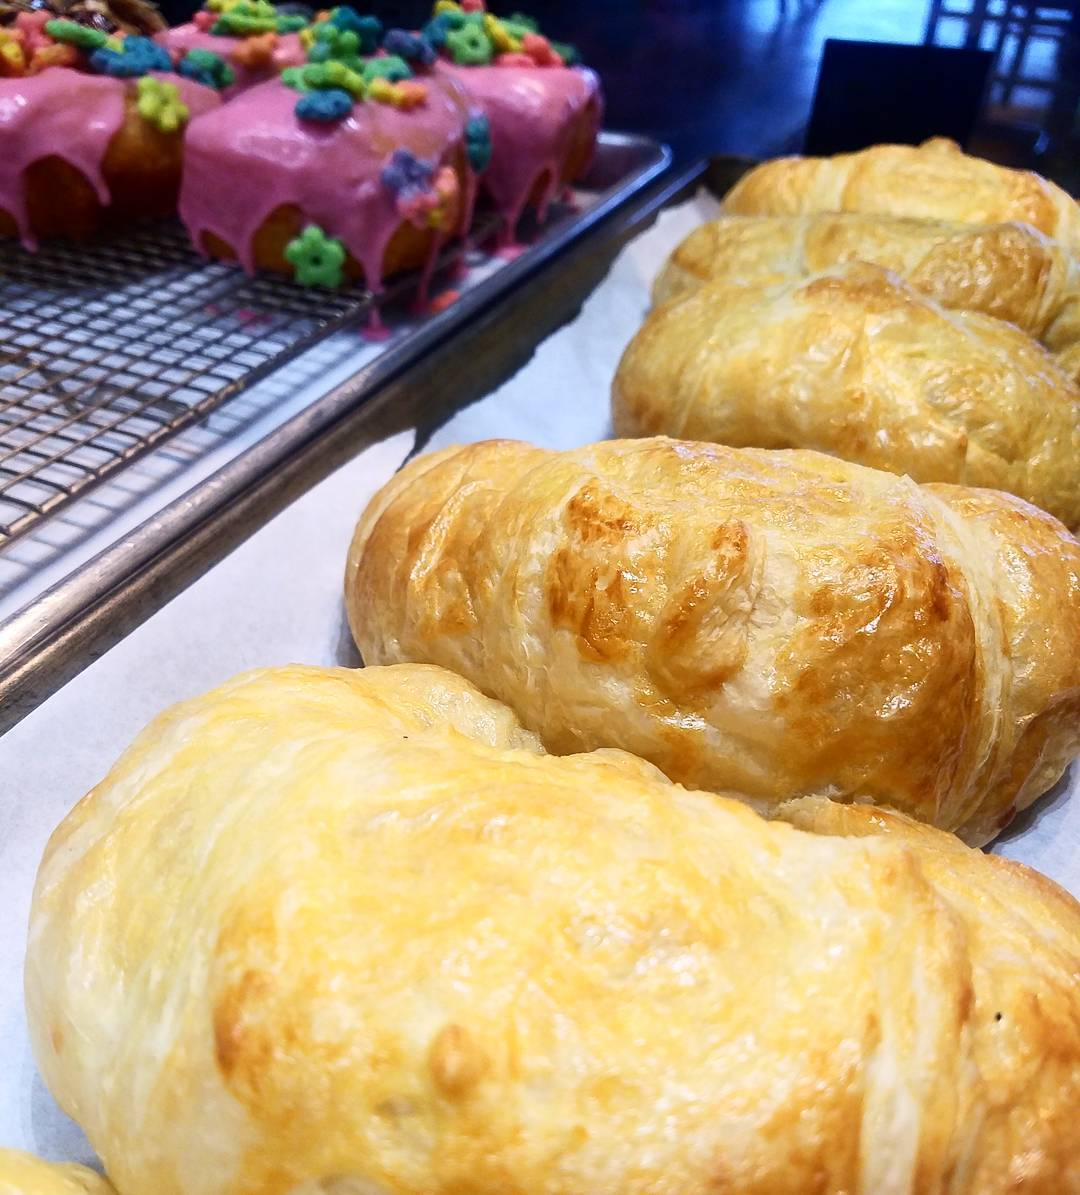 Croissant Fresh Hot Baked Pastry OKC French Flaky Food Tasty Chocolate Rich Almond Fluffy Sandwich Espresso